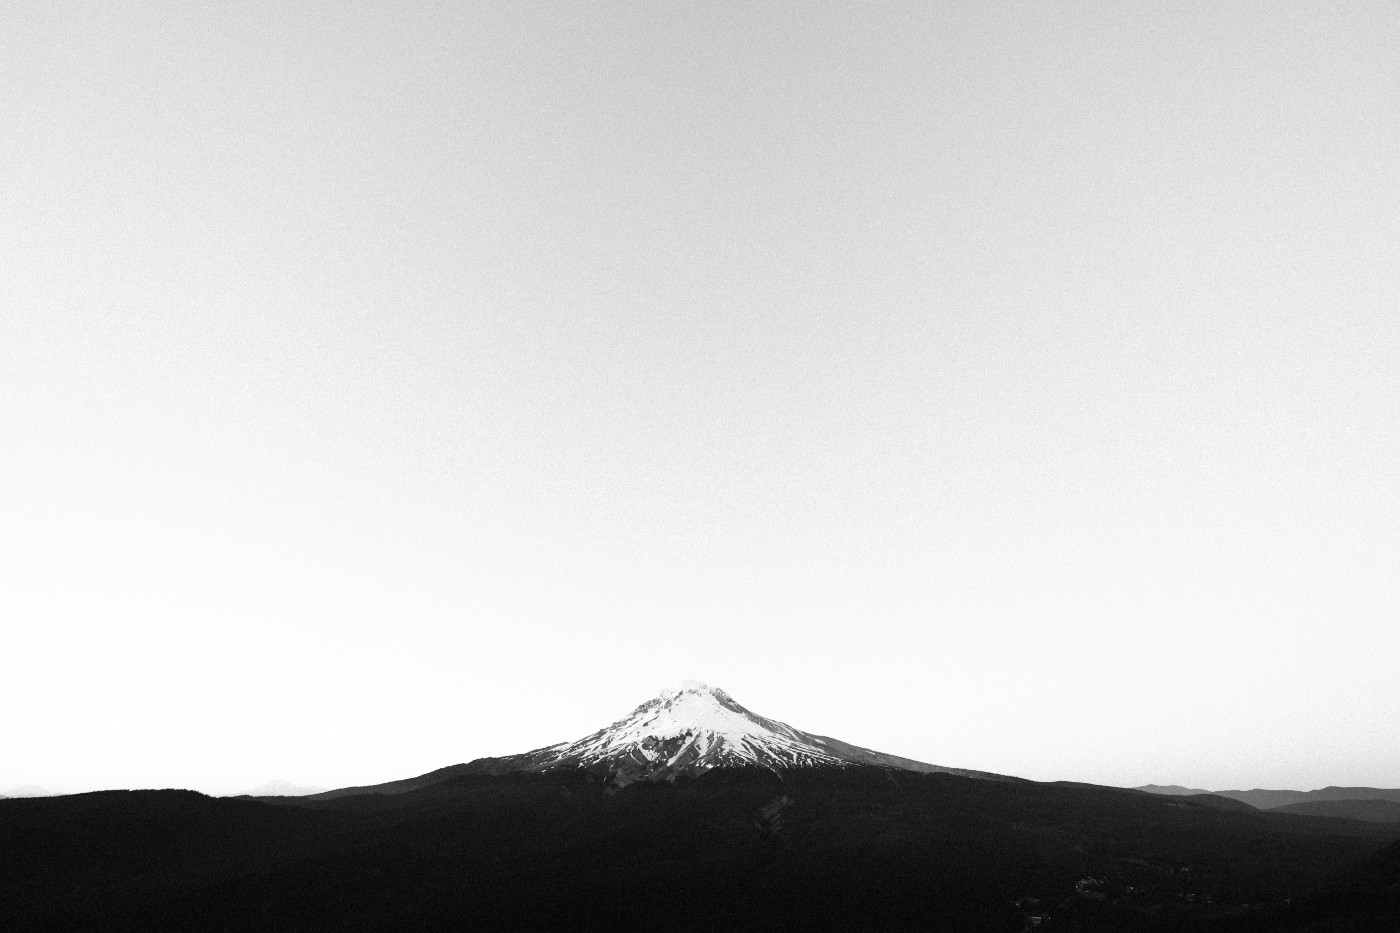 Mountain in black and white